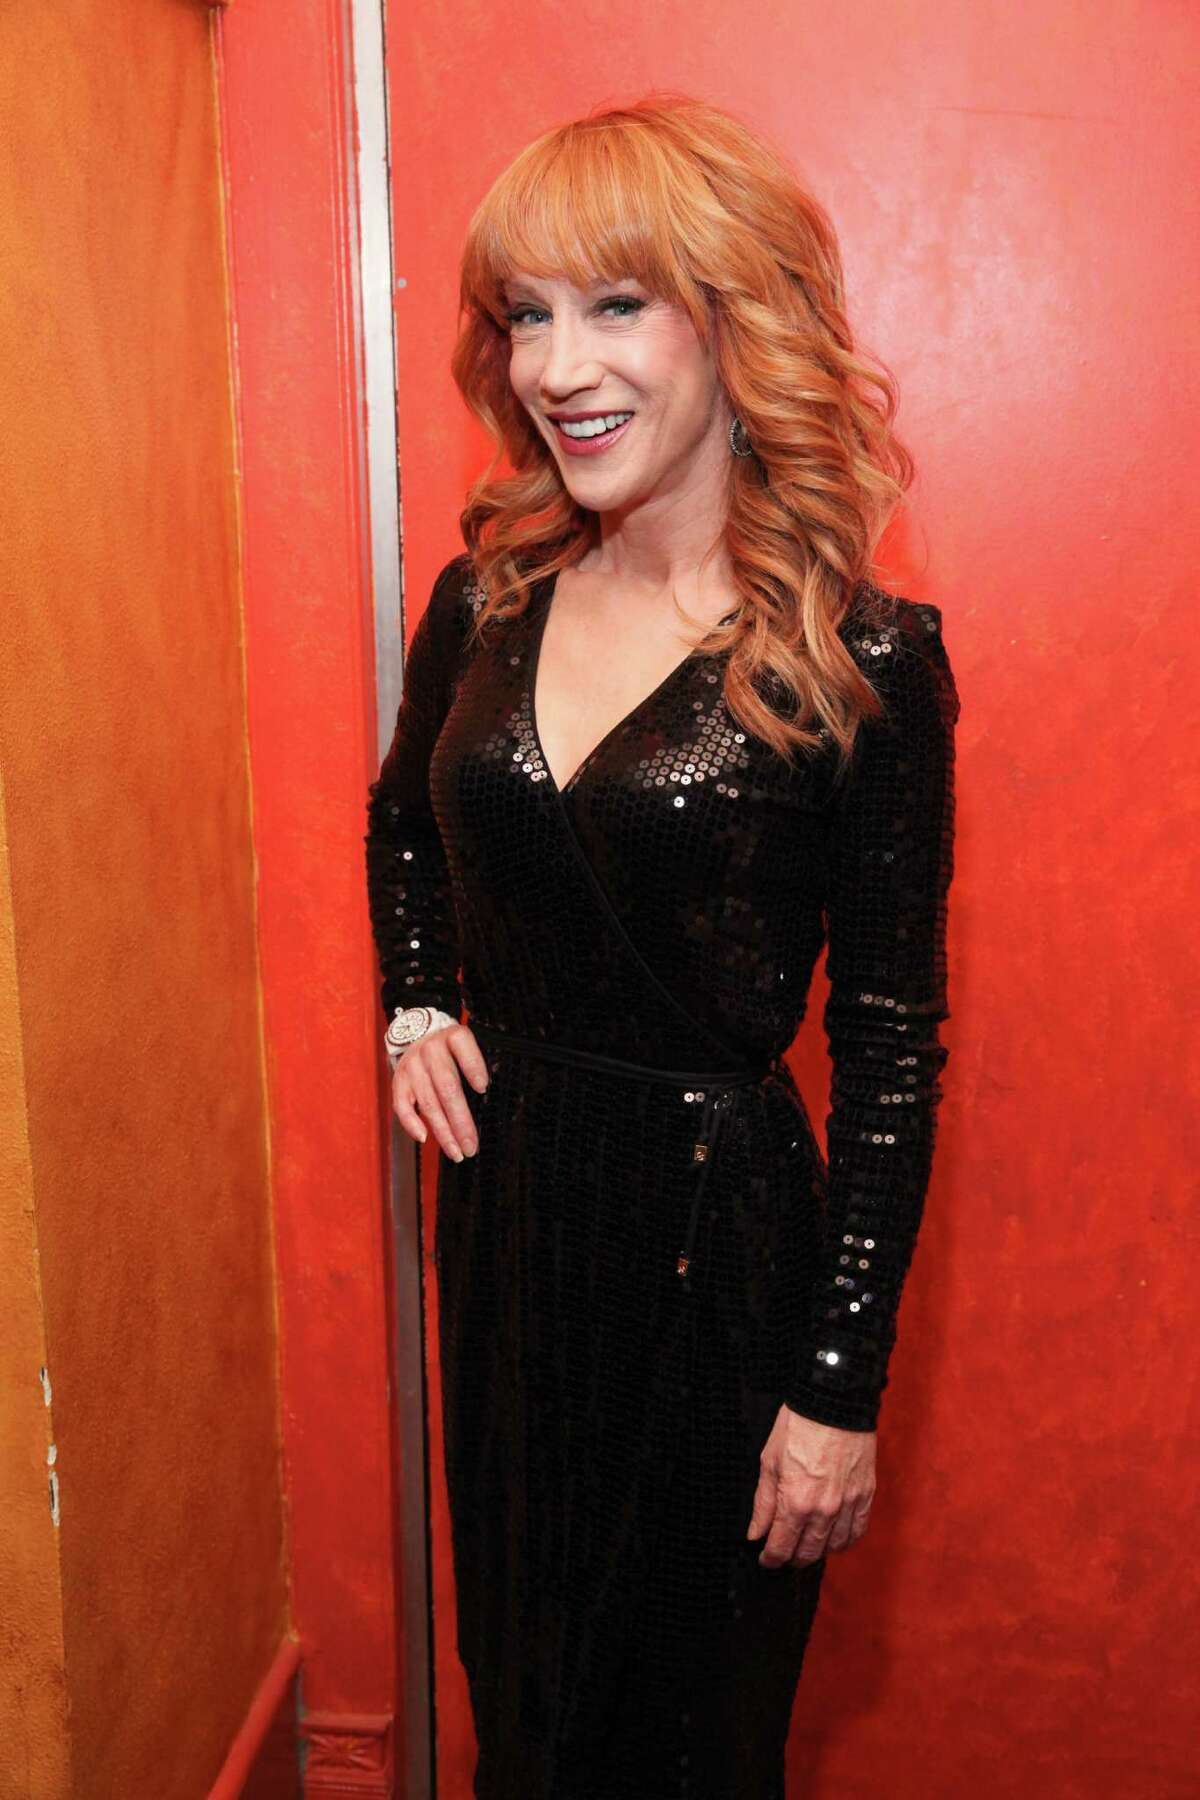 NEW YORK, NY - NOVEMBER 08: (EXCLUSIVE COVERAGE) Kathy Griffin celebrates her Carnegie Hall performance at her official after party hosted by Anderson Cooper at Trattoria Dell Arte Restaurant on November 8, 2013 in New York City.